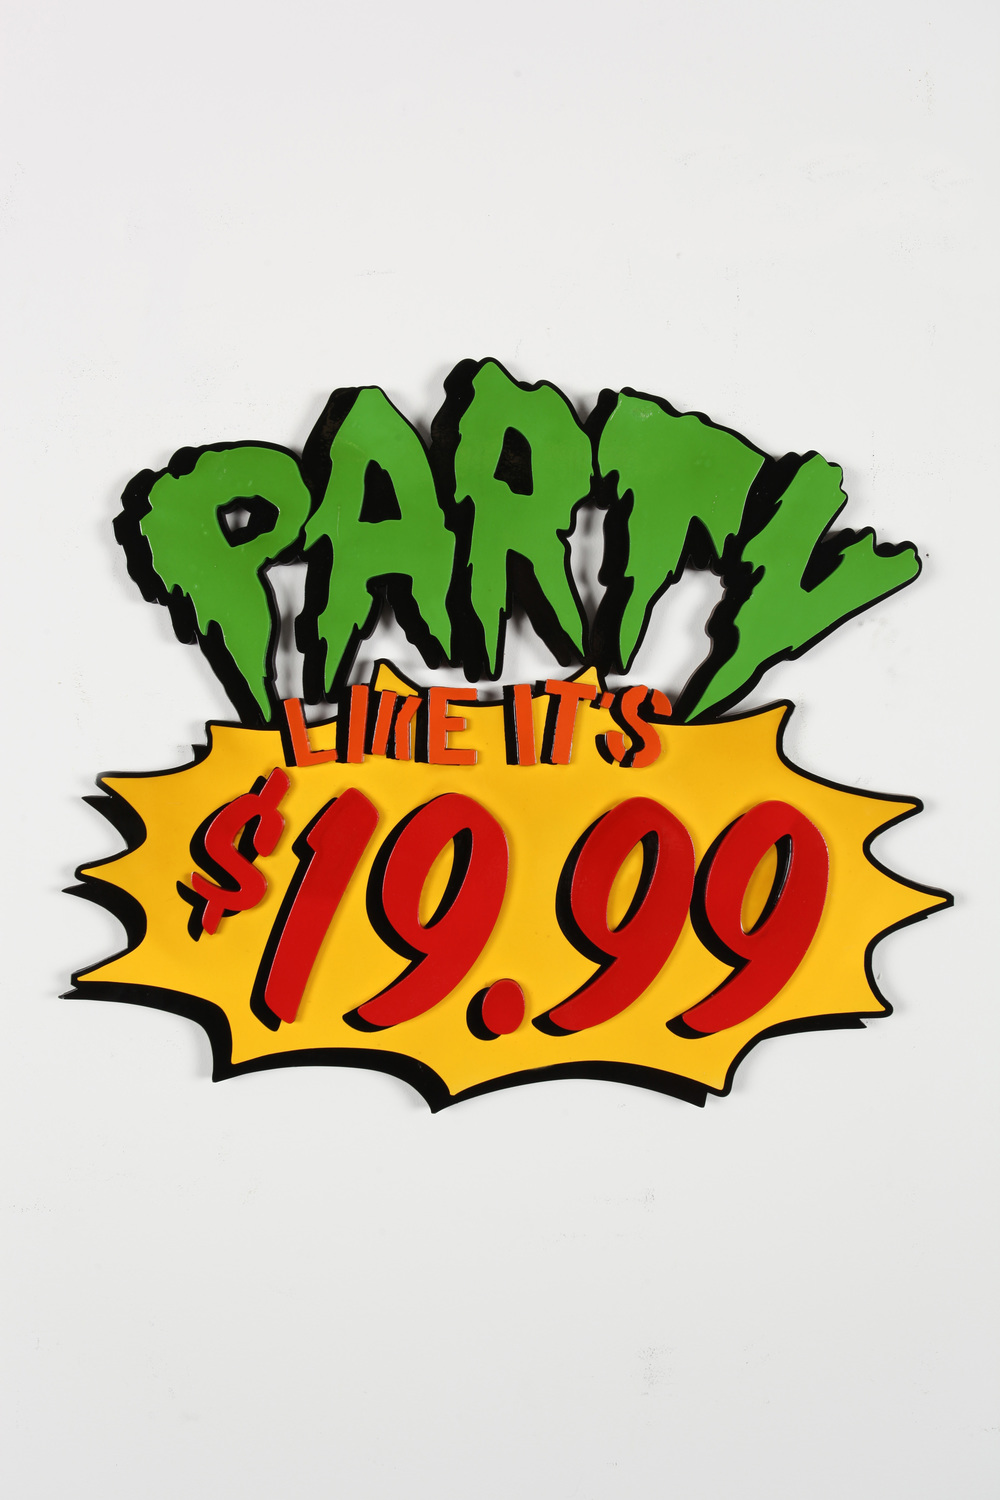 "Party Like It's $19.99  24"" x 30"" x 2"" Inch  Aerosol Stencil on Laser Cut Mounted Wood Panel Edition of 5  $650"